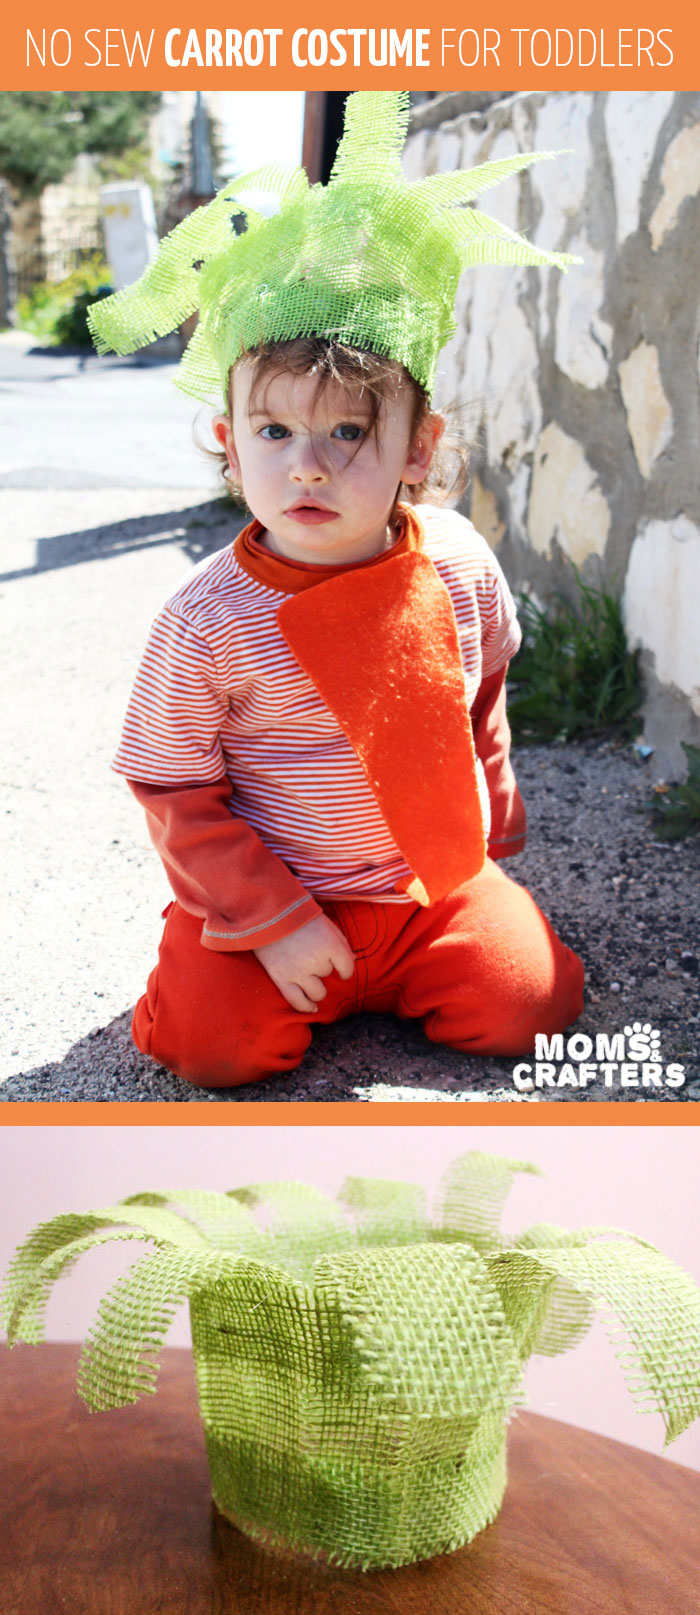 DIY No Sew Carrot Costume for Toddlers - Moms and Crafters